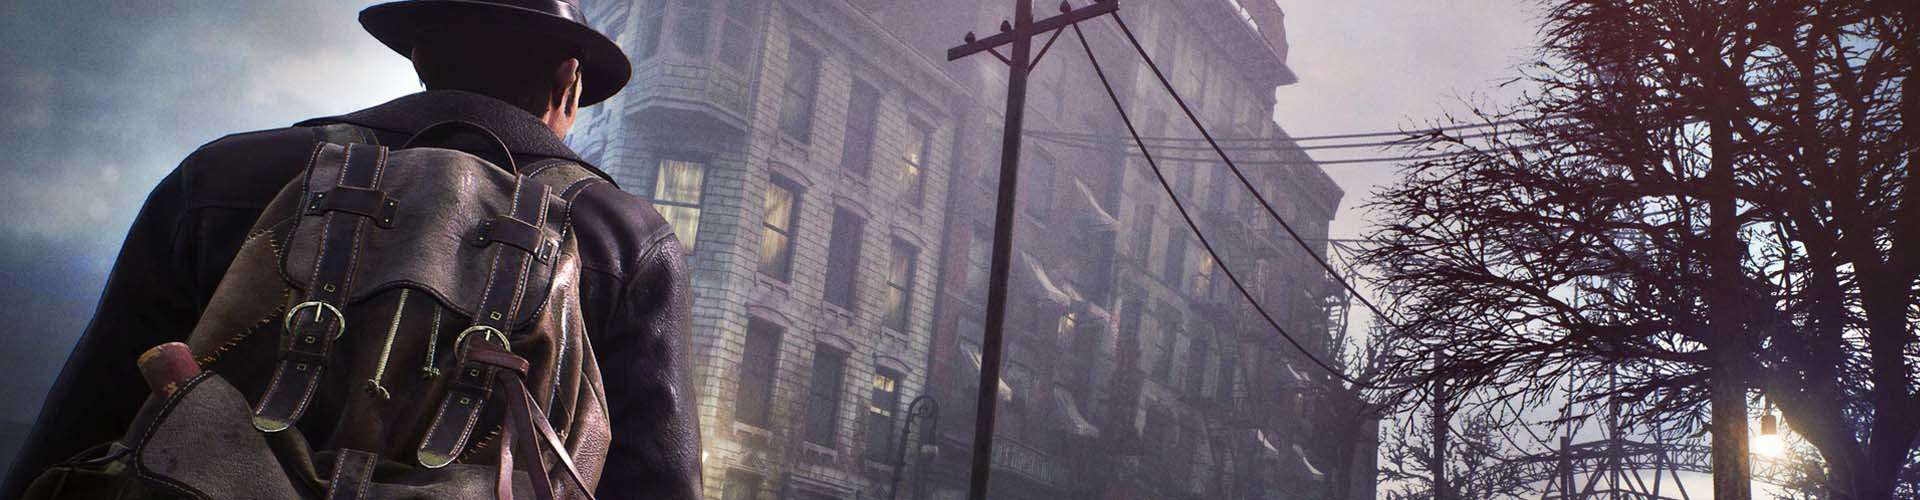 The Sinking City Release Date, News, Trailer And Rumors